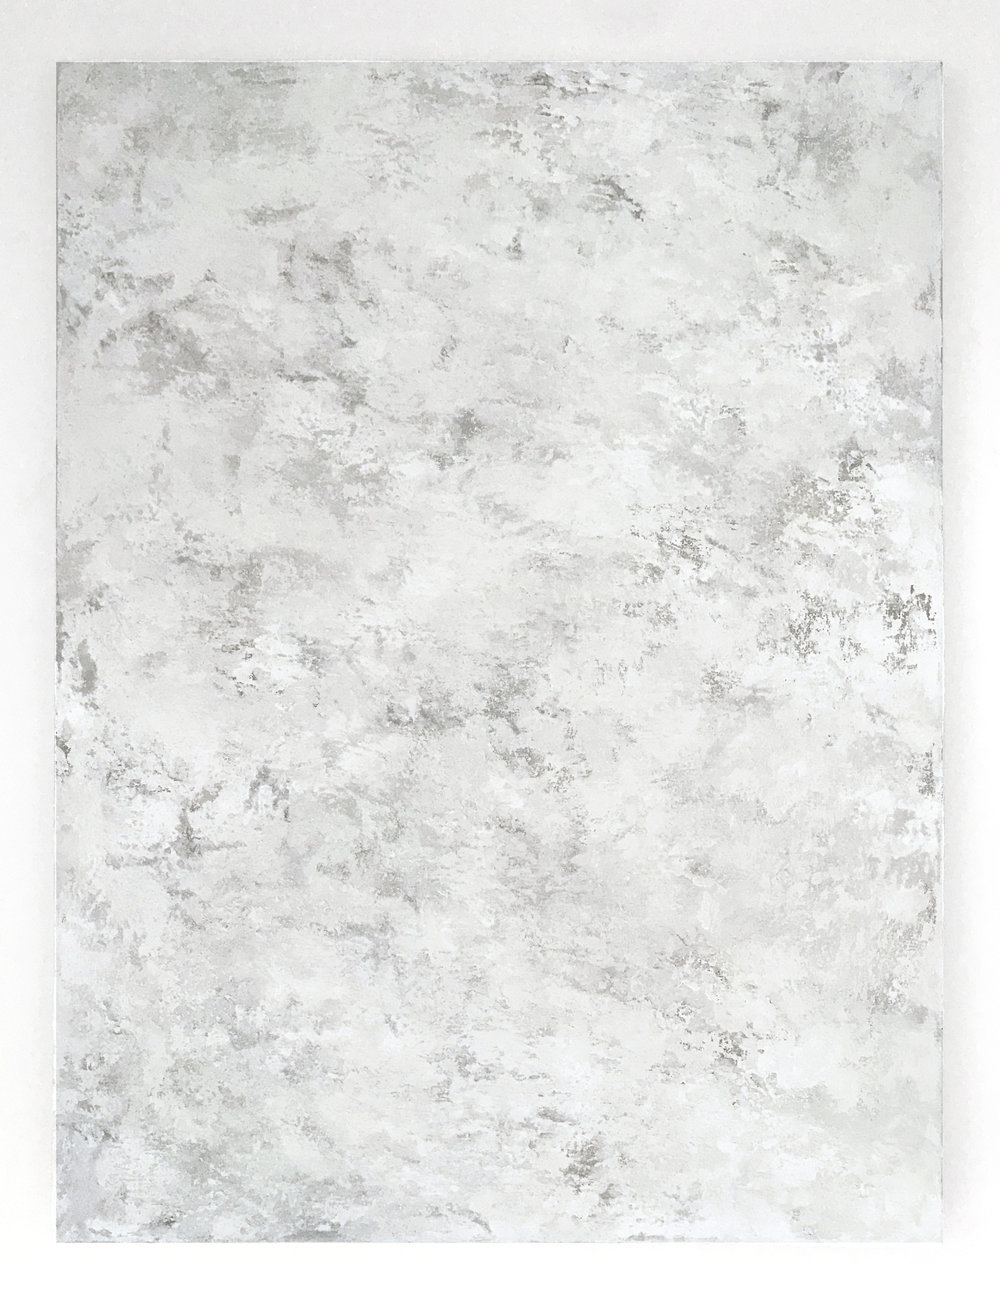 - Untitled (White Painting 18-01)2018Acrylic and concrete on linen48 x 36 inches